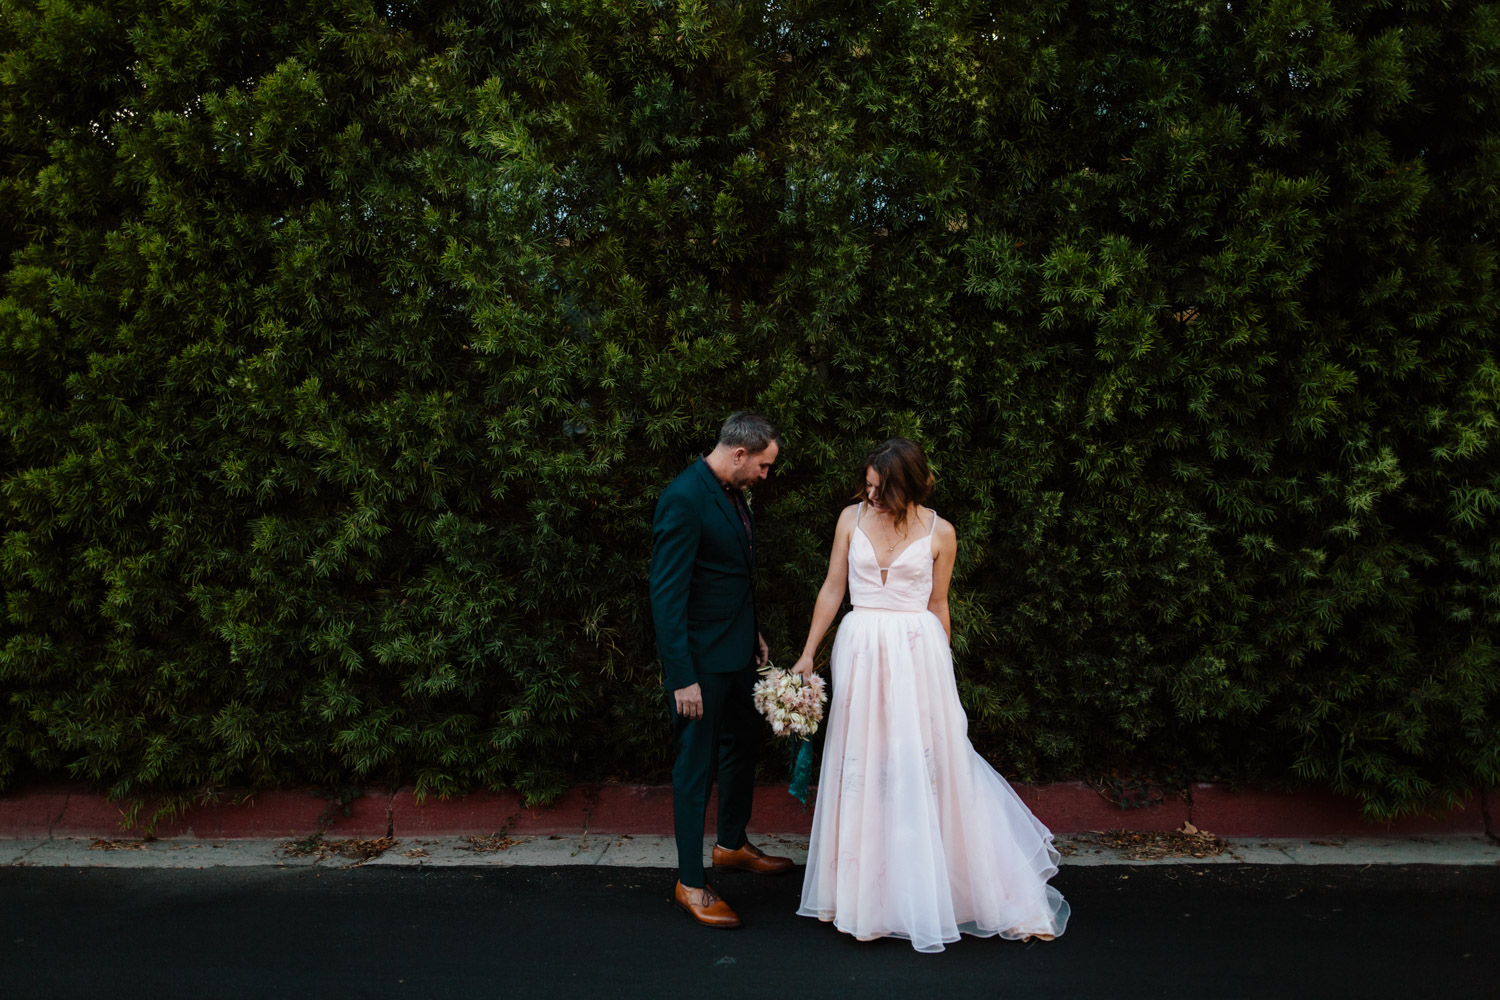 Riverside County Wedding Photographer, Five Crowns - The Gathering Season x weareleoandkat 055.JPG